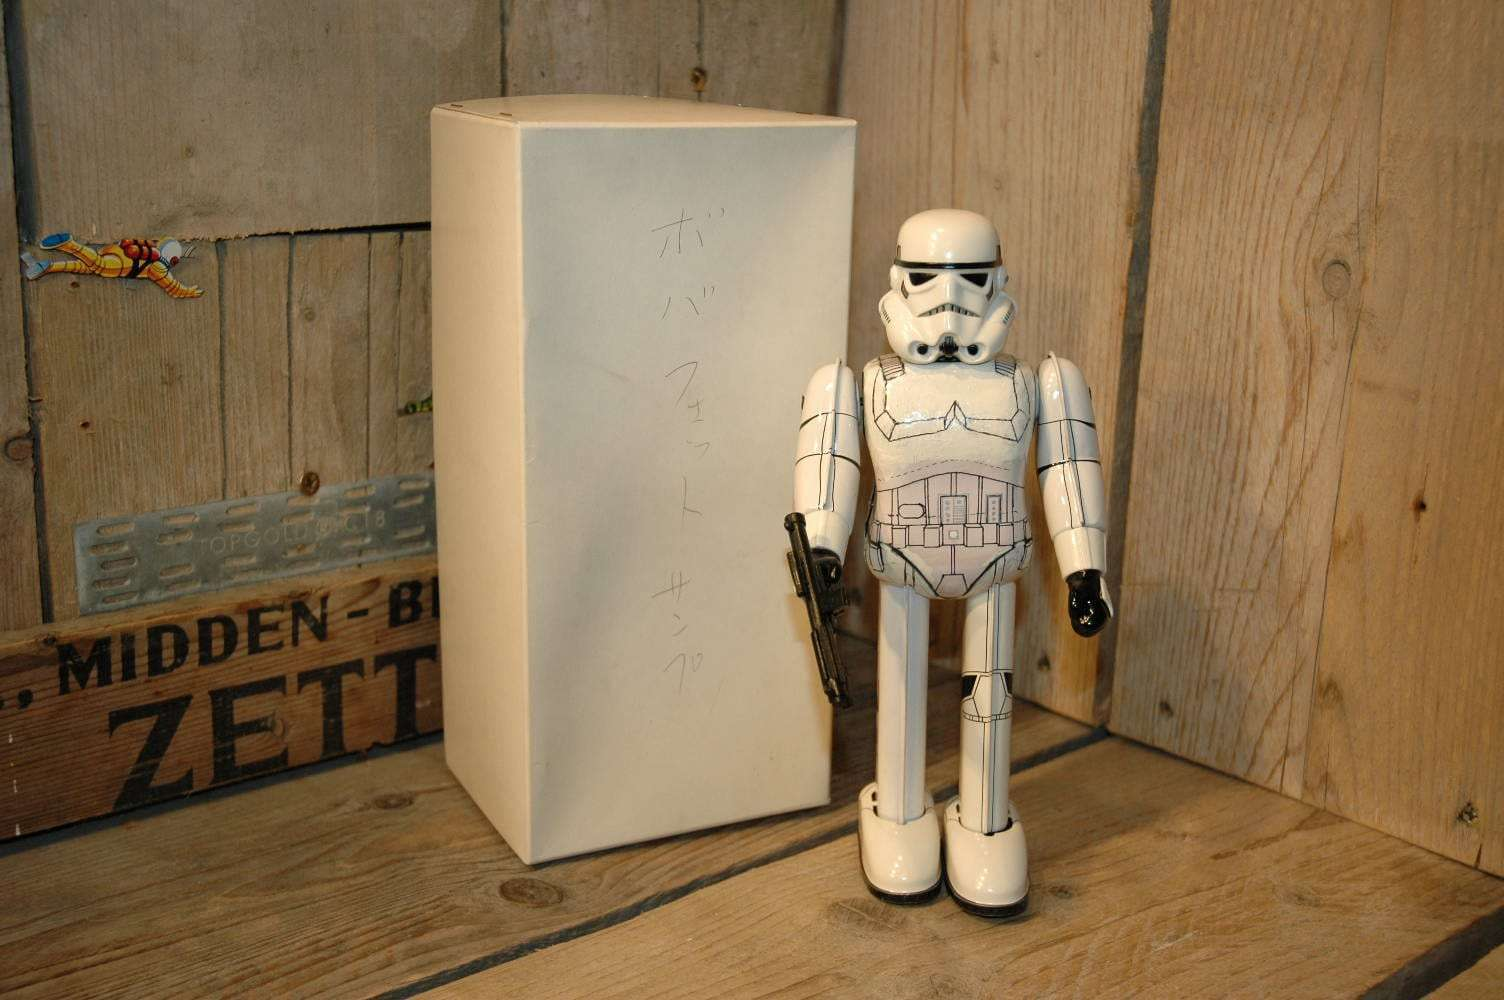 Osaka Tin Toy Institute - StormTrooper Prototype StarWars